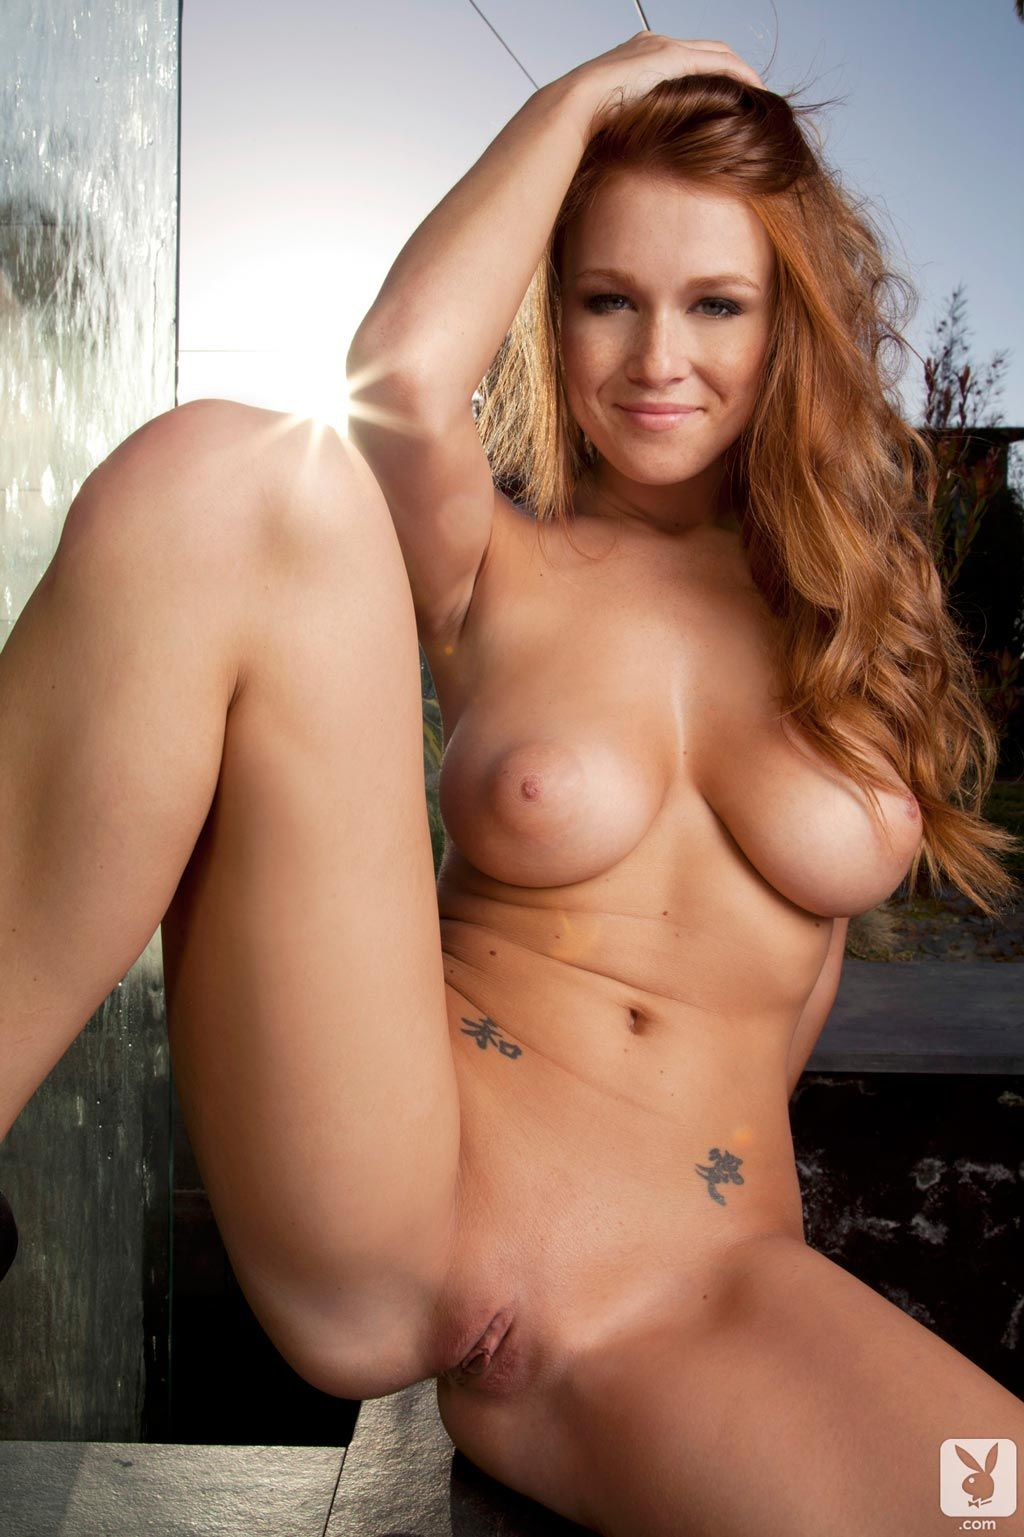 nude playboy girls | leanna decker pussy hole | ladies | pinterest